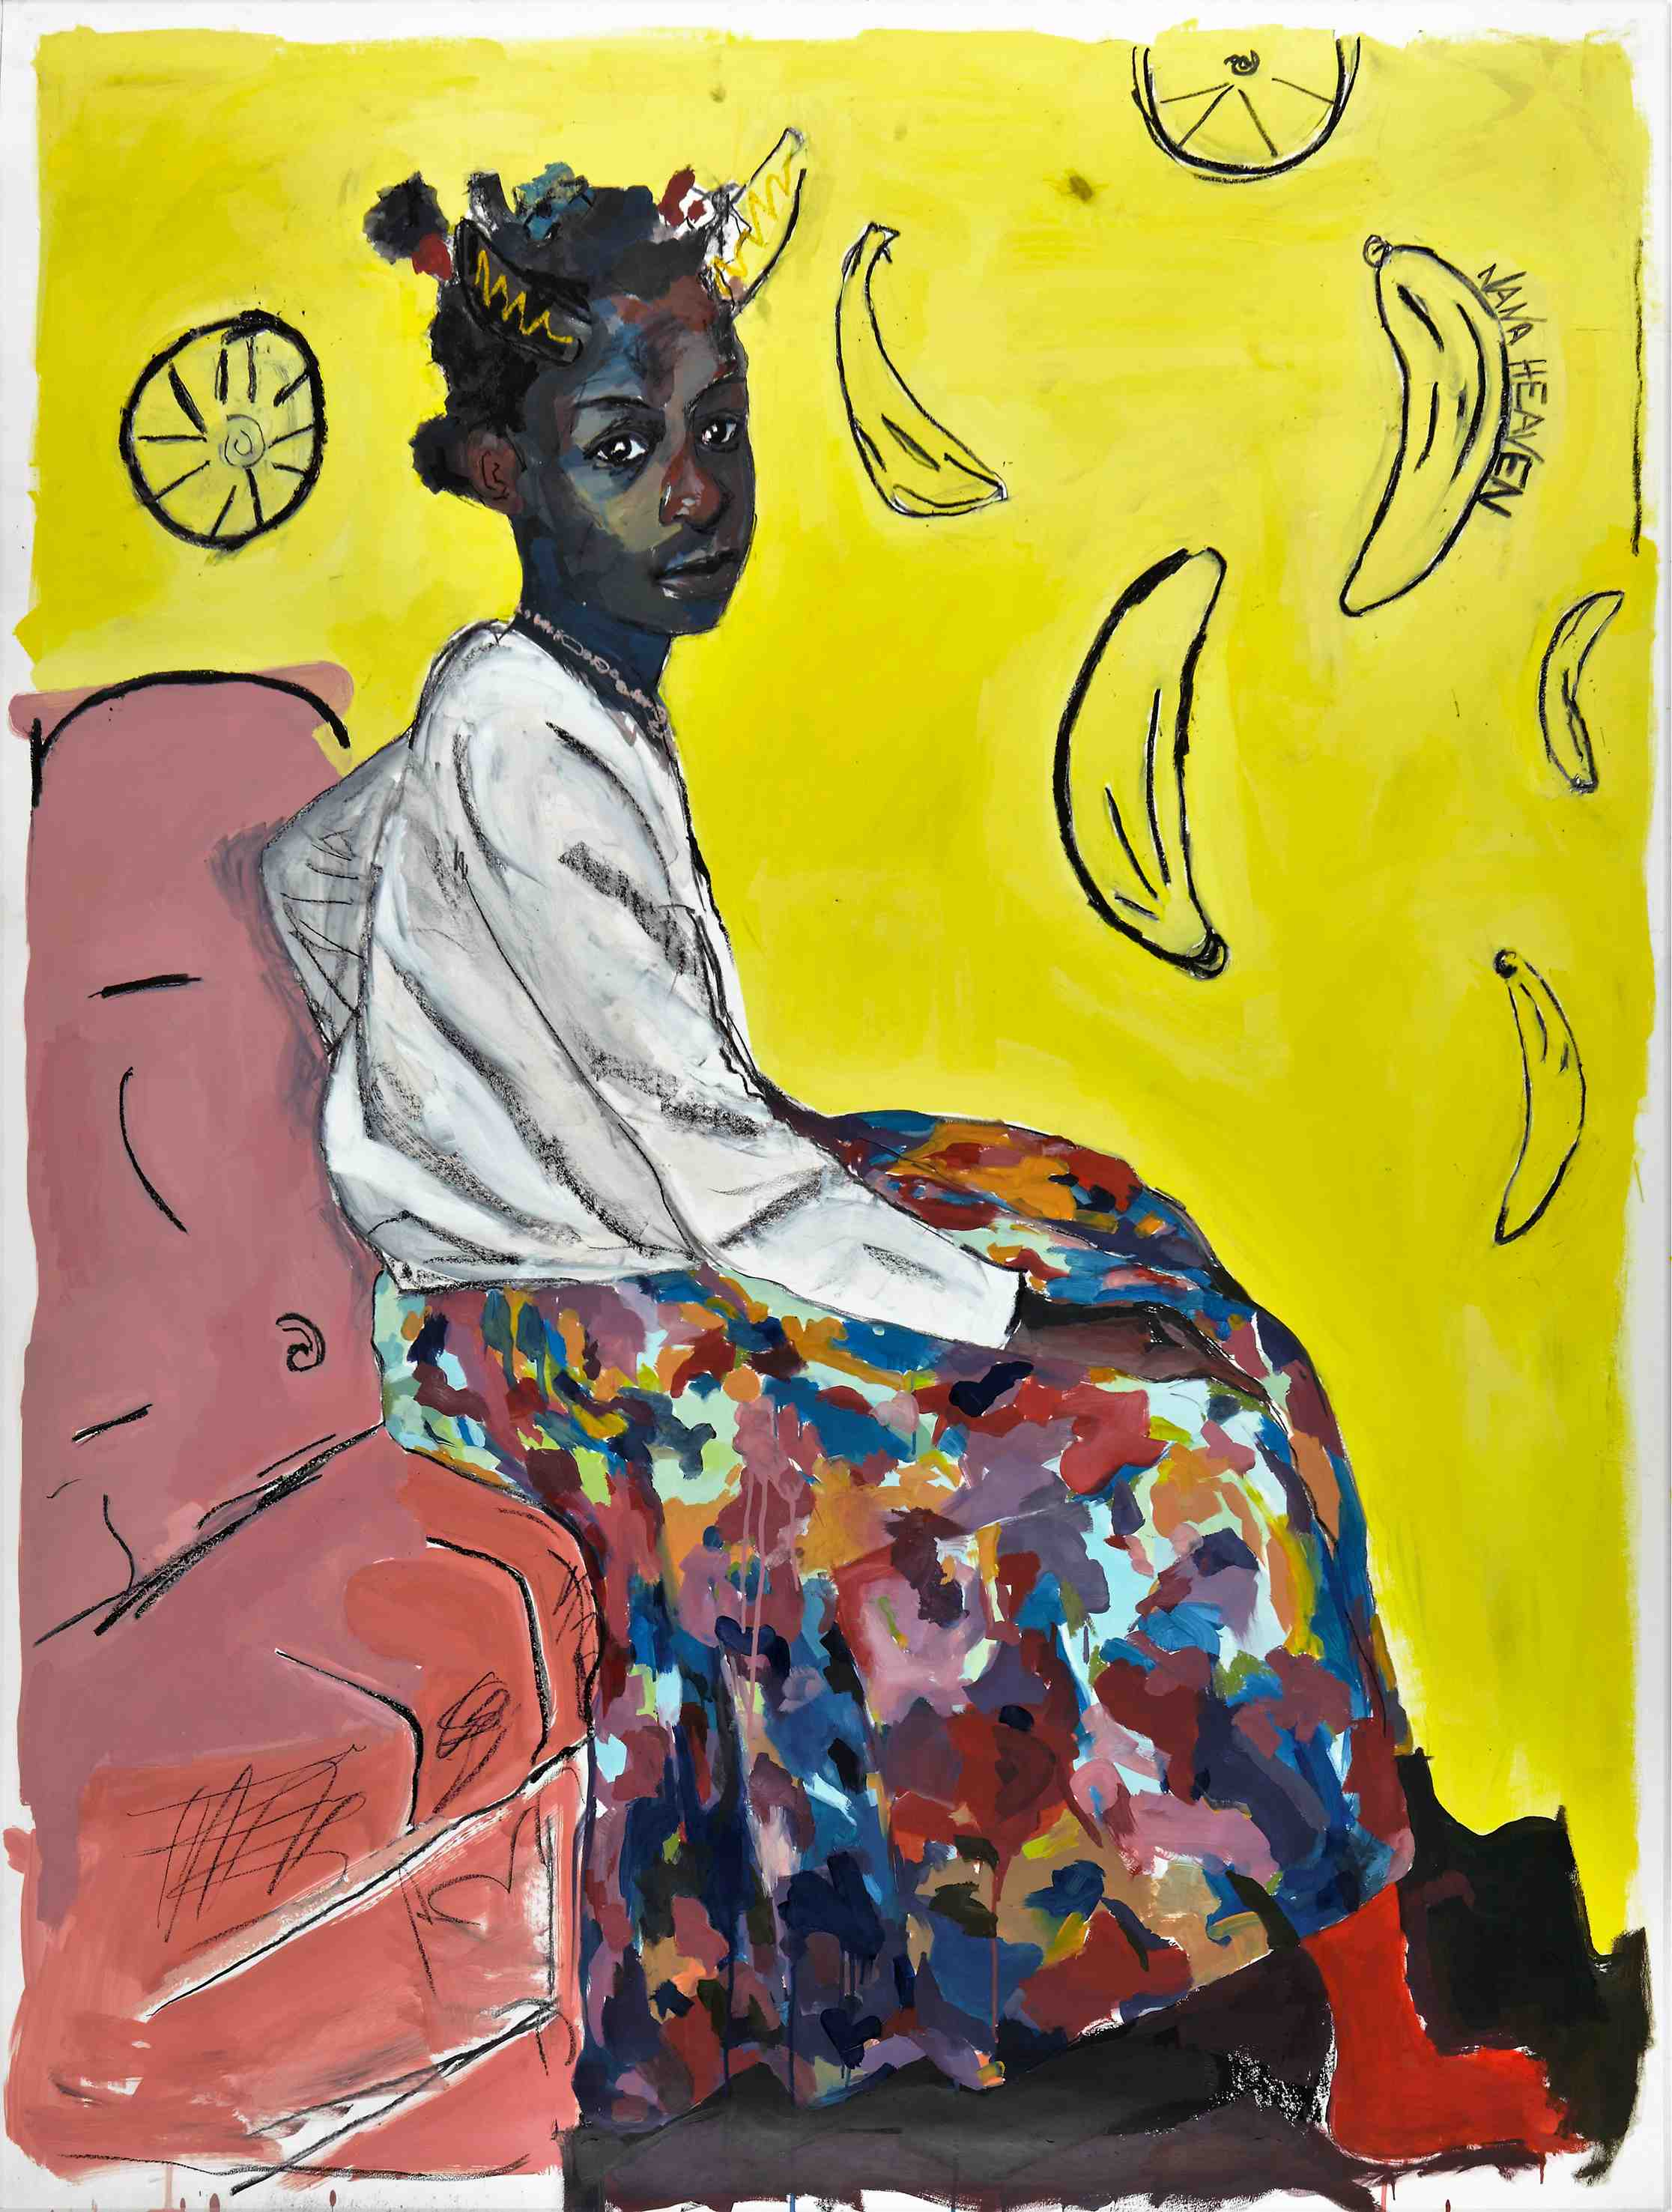 Kudzanai-Violet Hwami, 'Ego in Red Socks', 2016, Oil and charcoal on paper, 205 x 156 cm, Courtesy of Tyburn Gallery